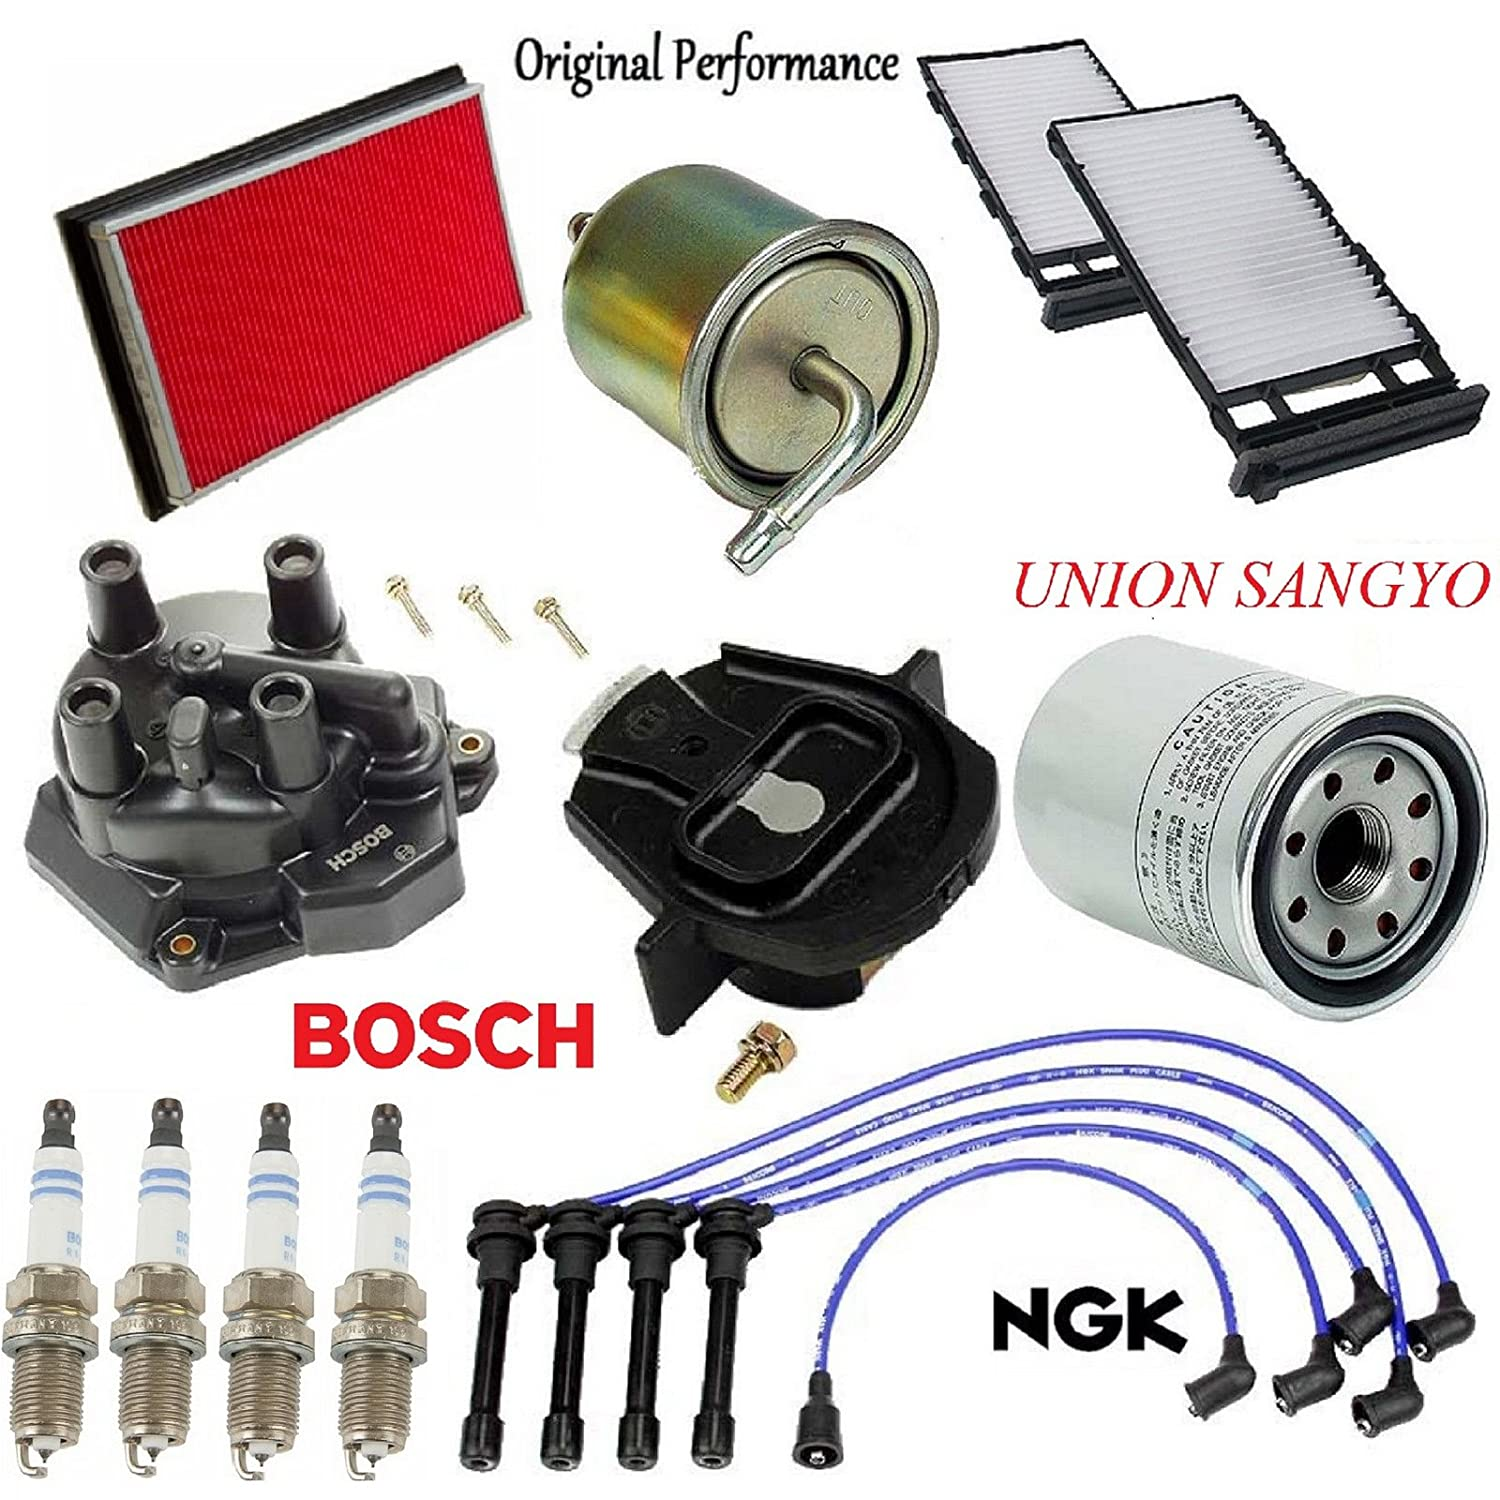 Tune Up KIT Filters Cap Rotor Spark Plug for Nissan Altima L4; 2.4L 1997-2001